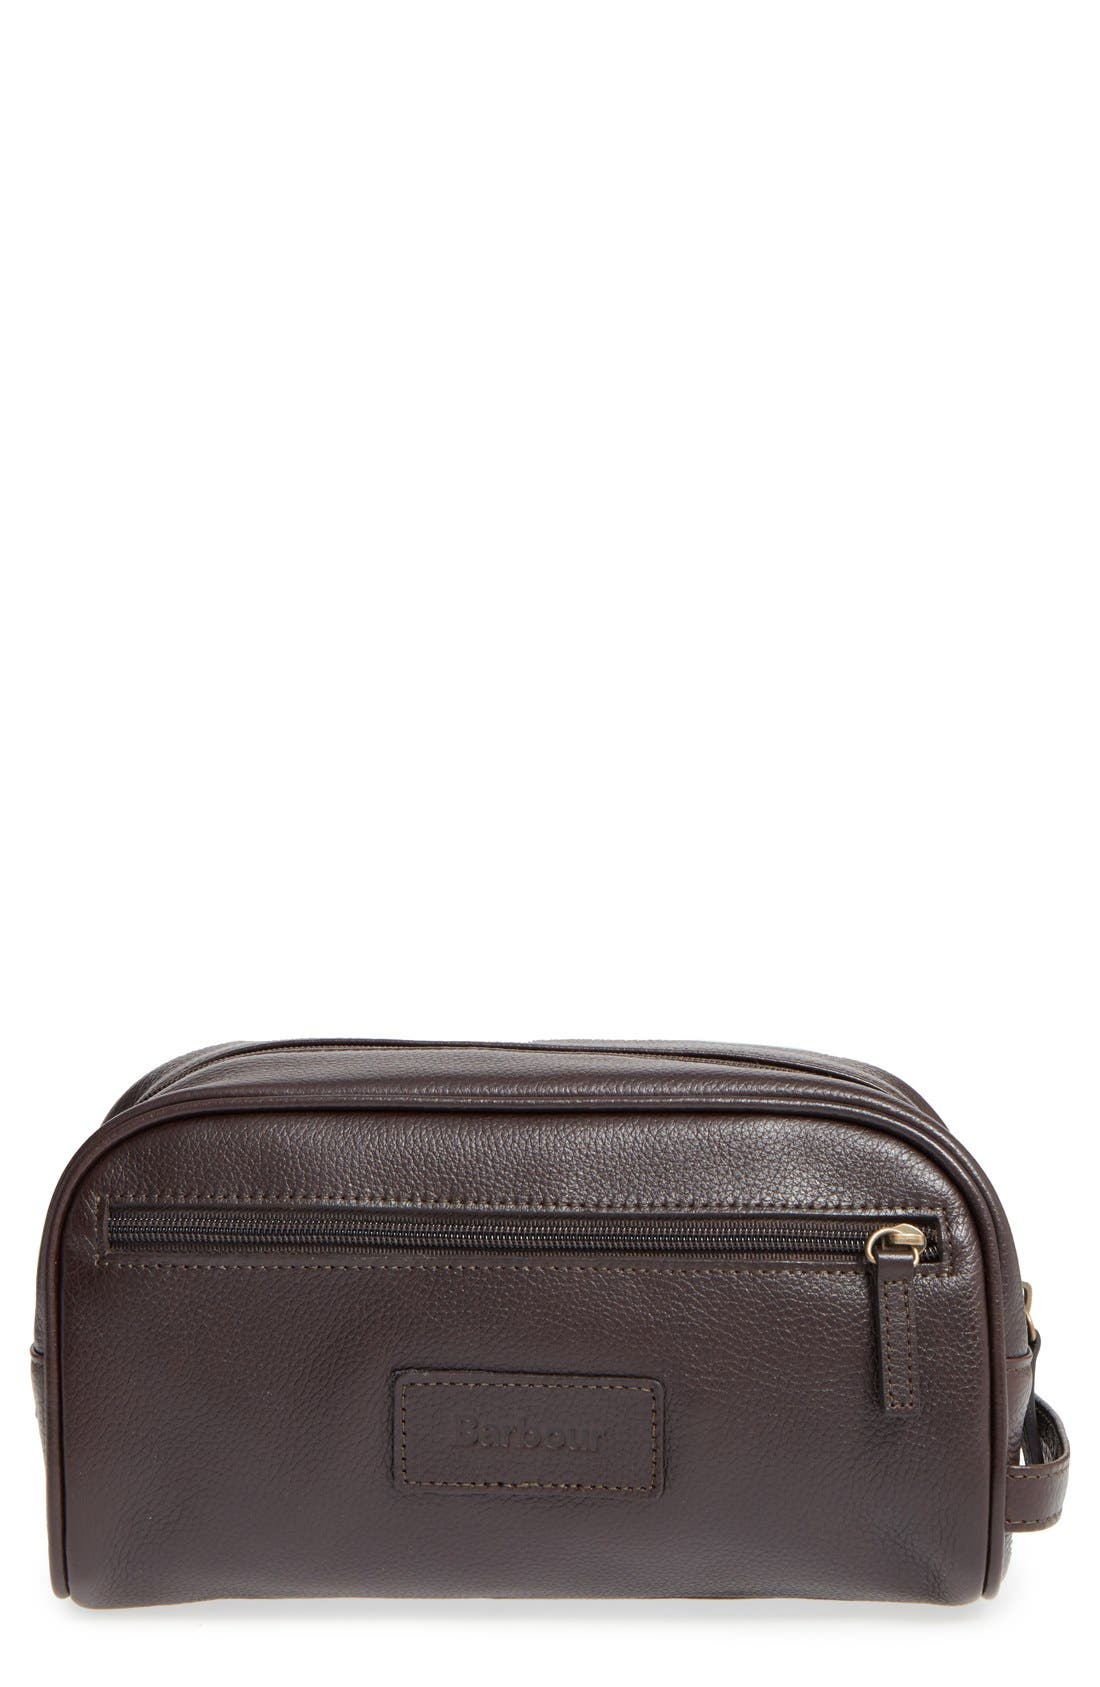 Leather Travel Kit,                         Main,                         color, DARK BROWN